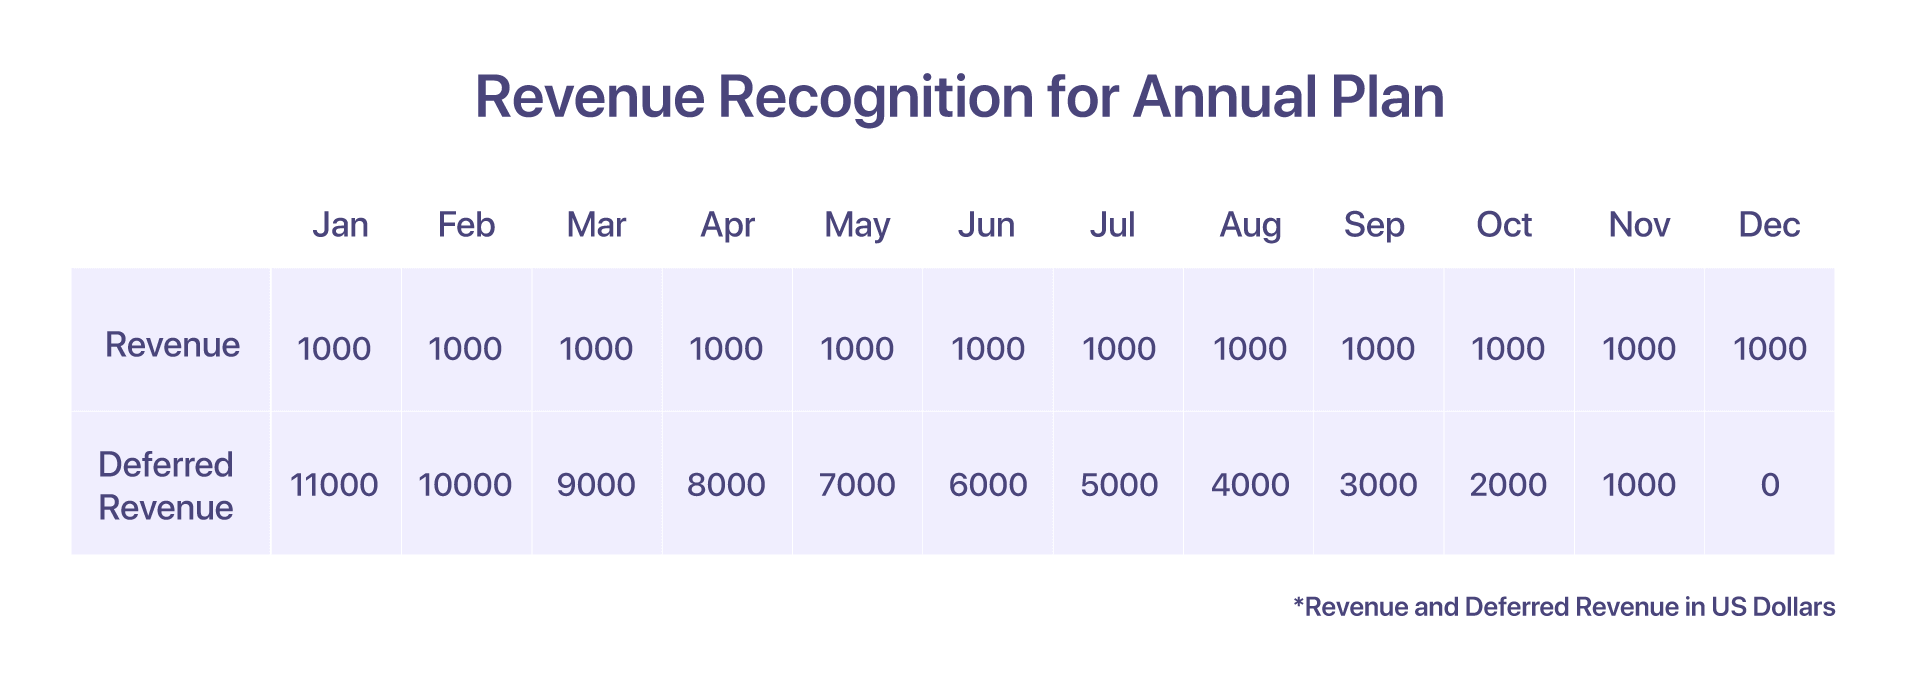 revenue recognition for an annual plan